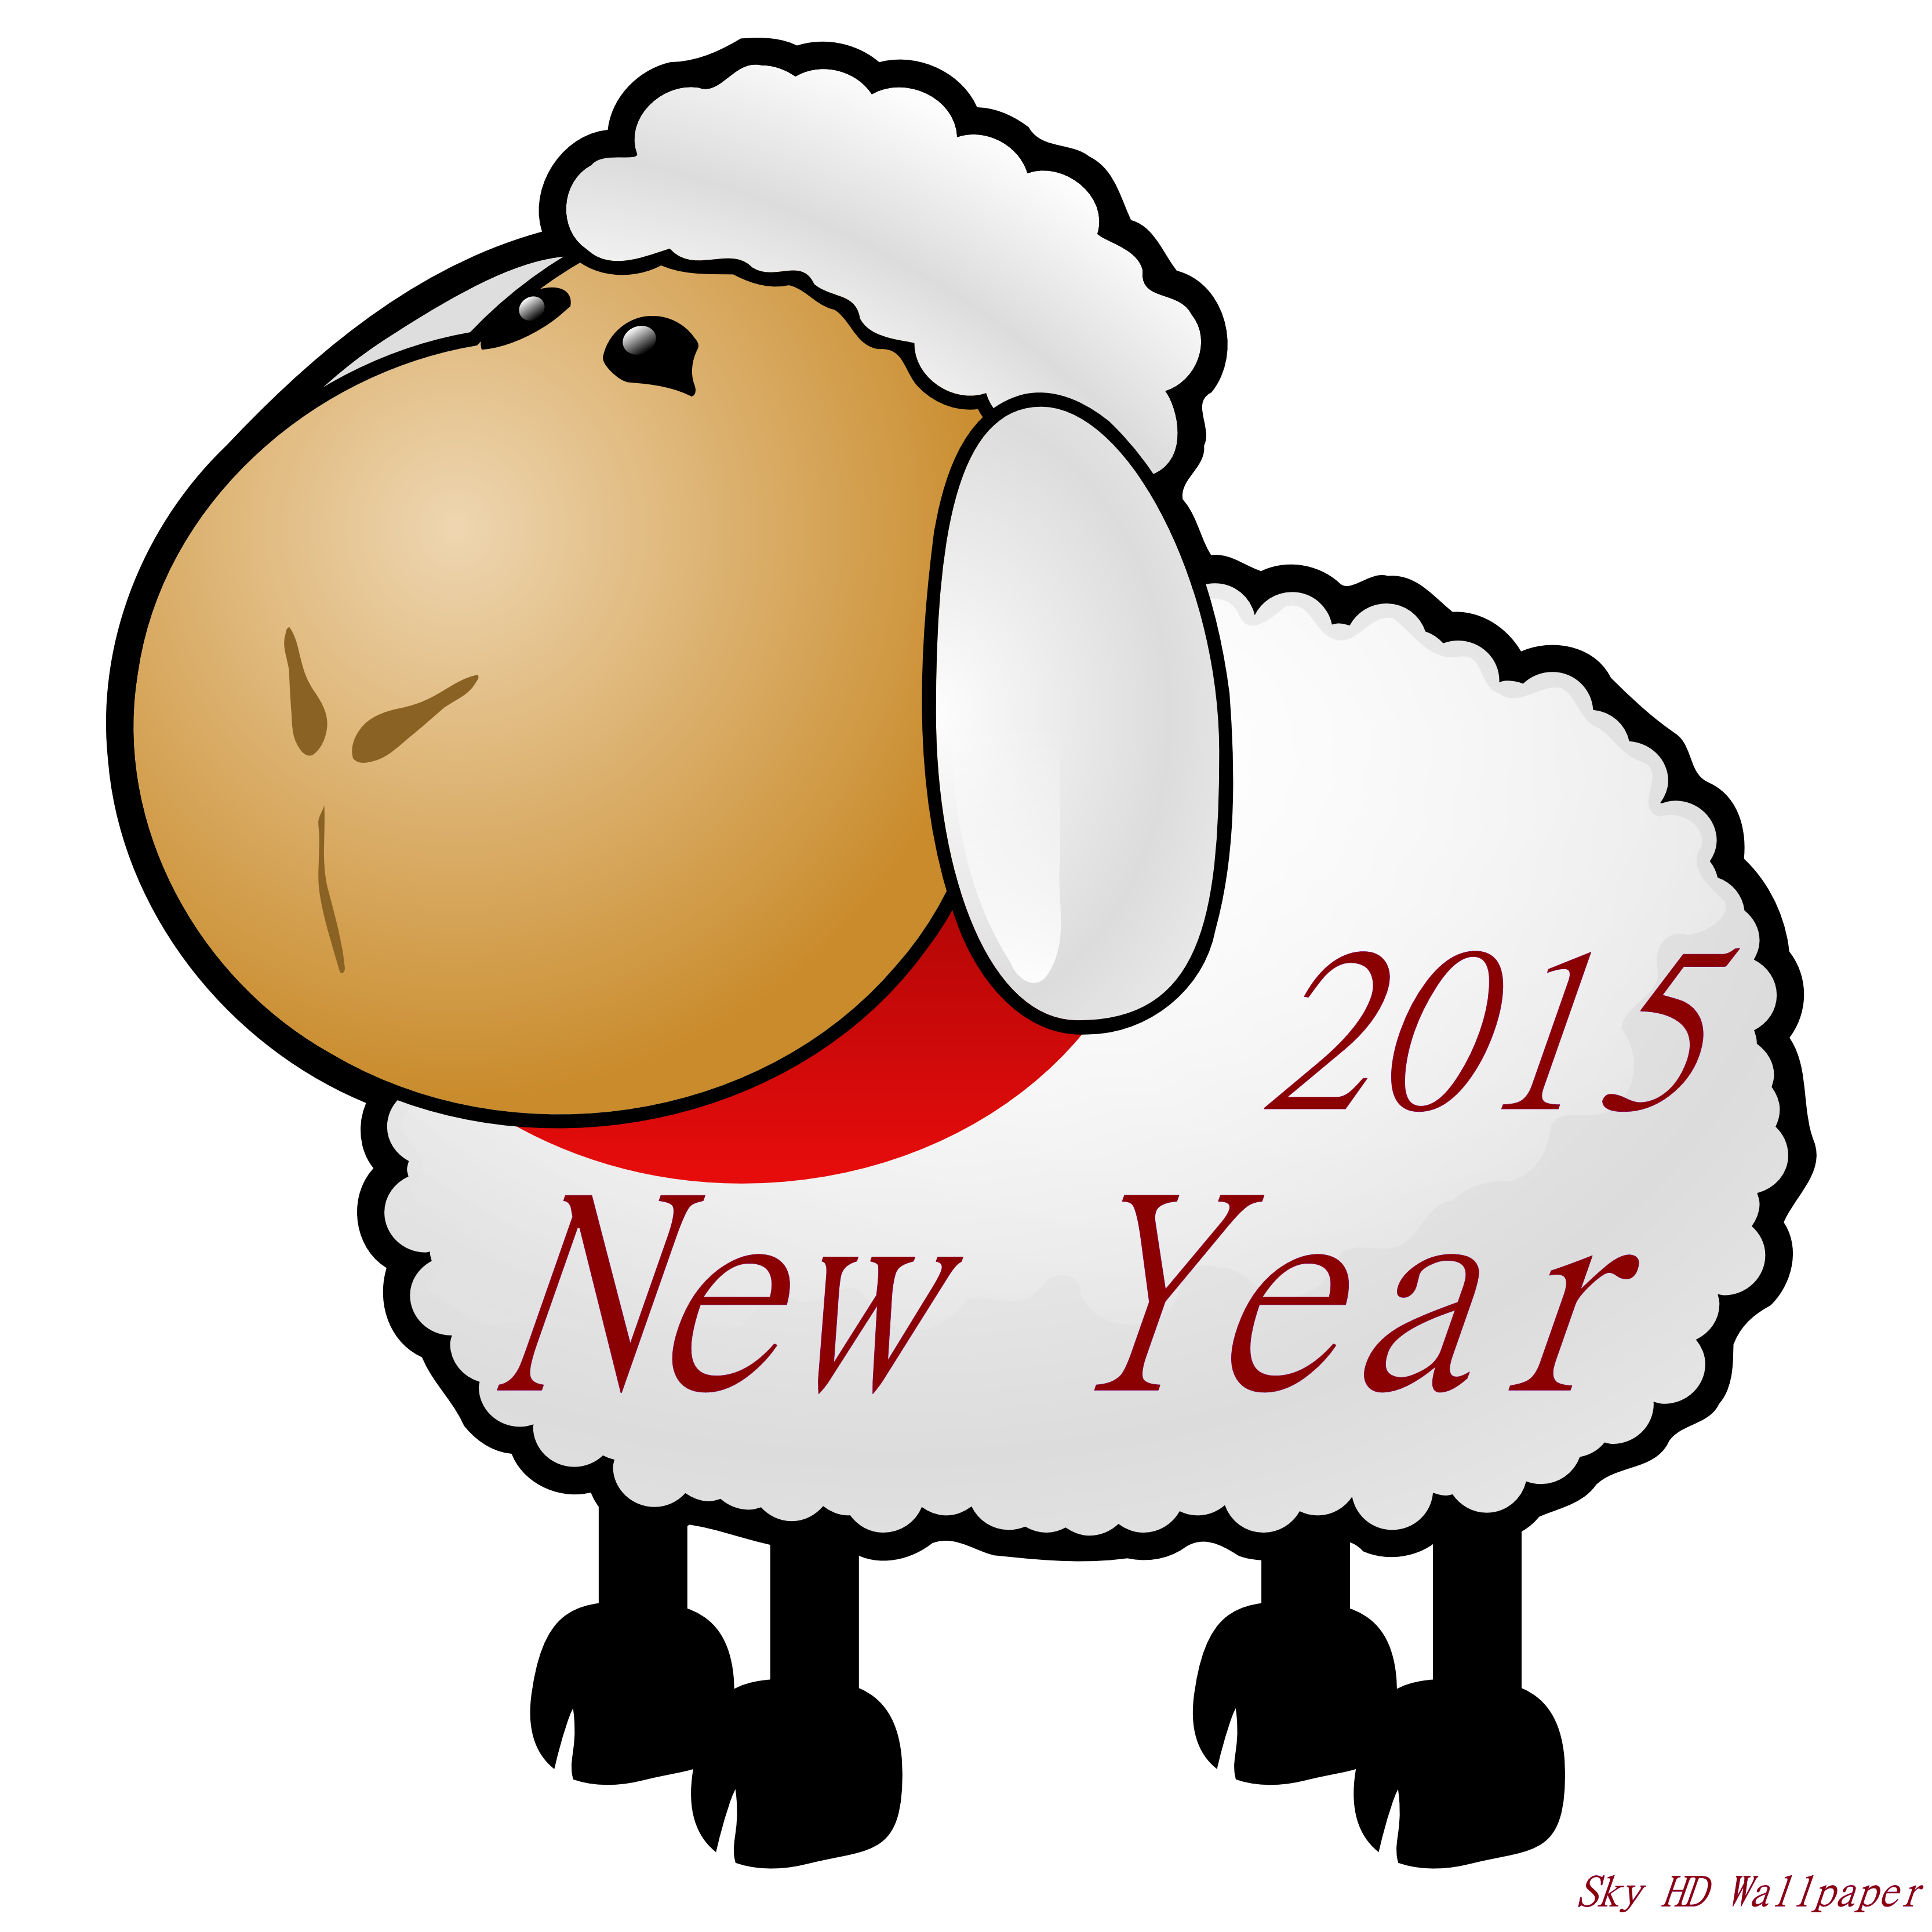 Chinese New Year 2015 Clipart.